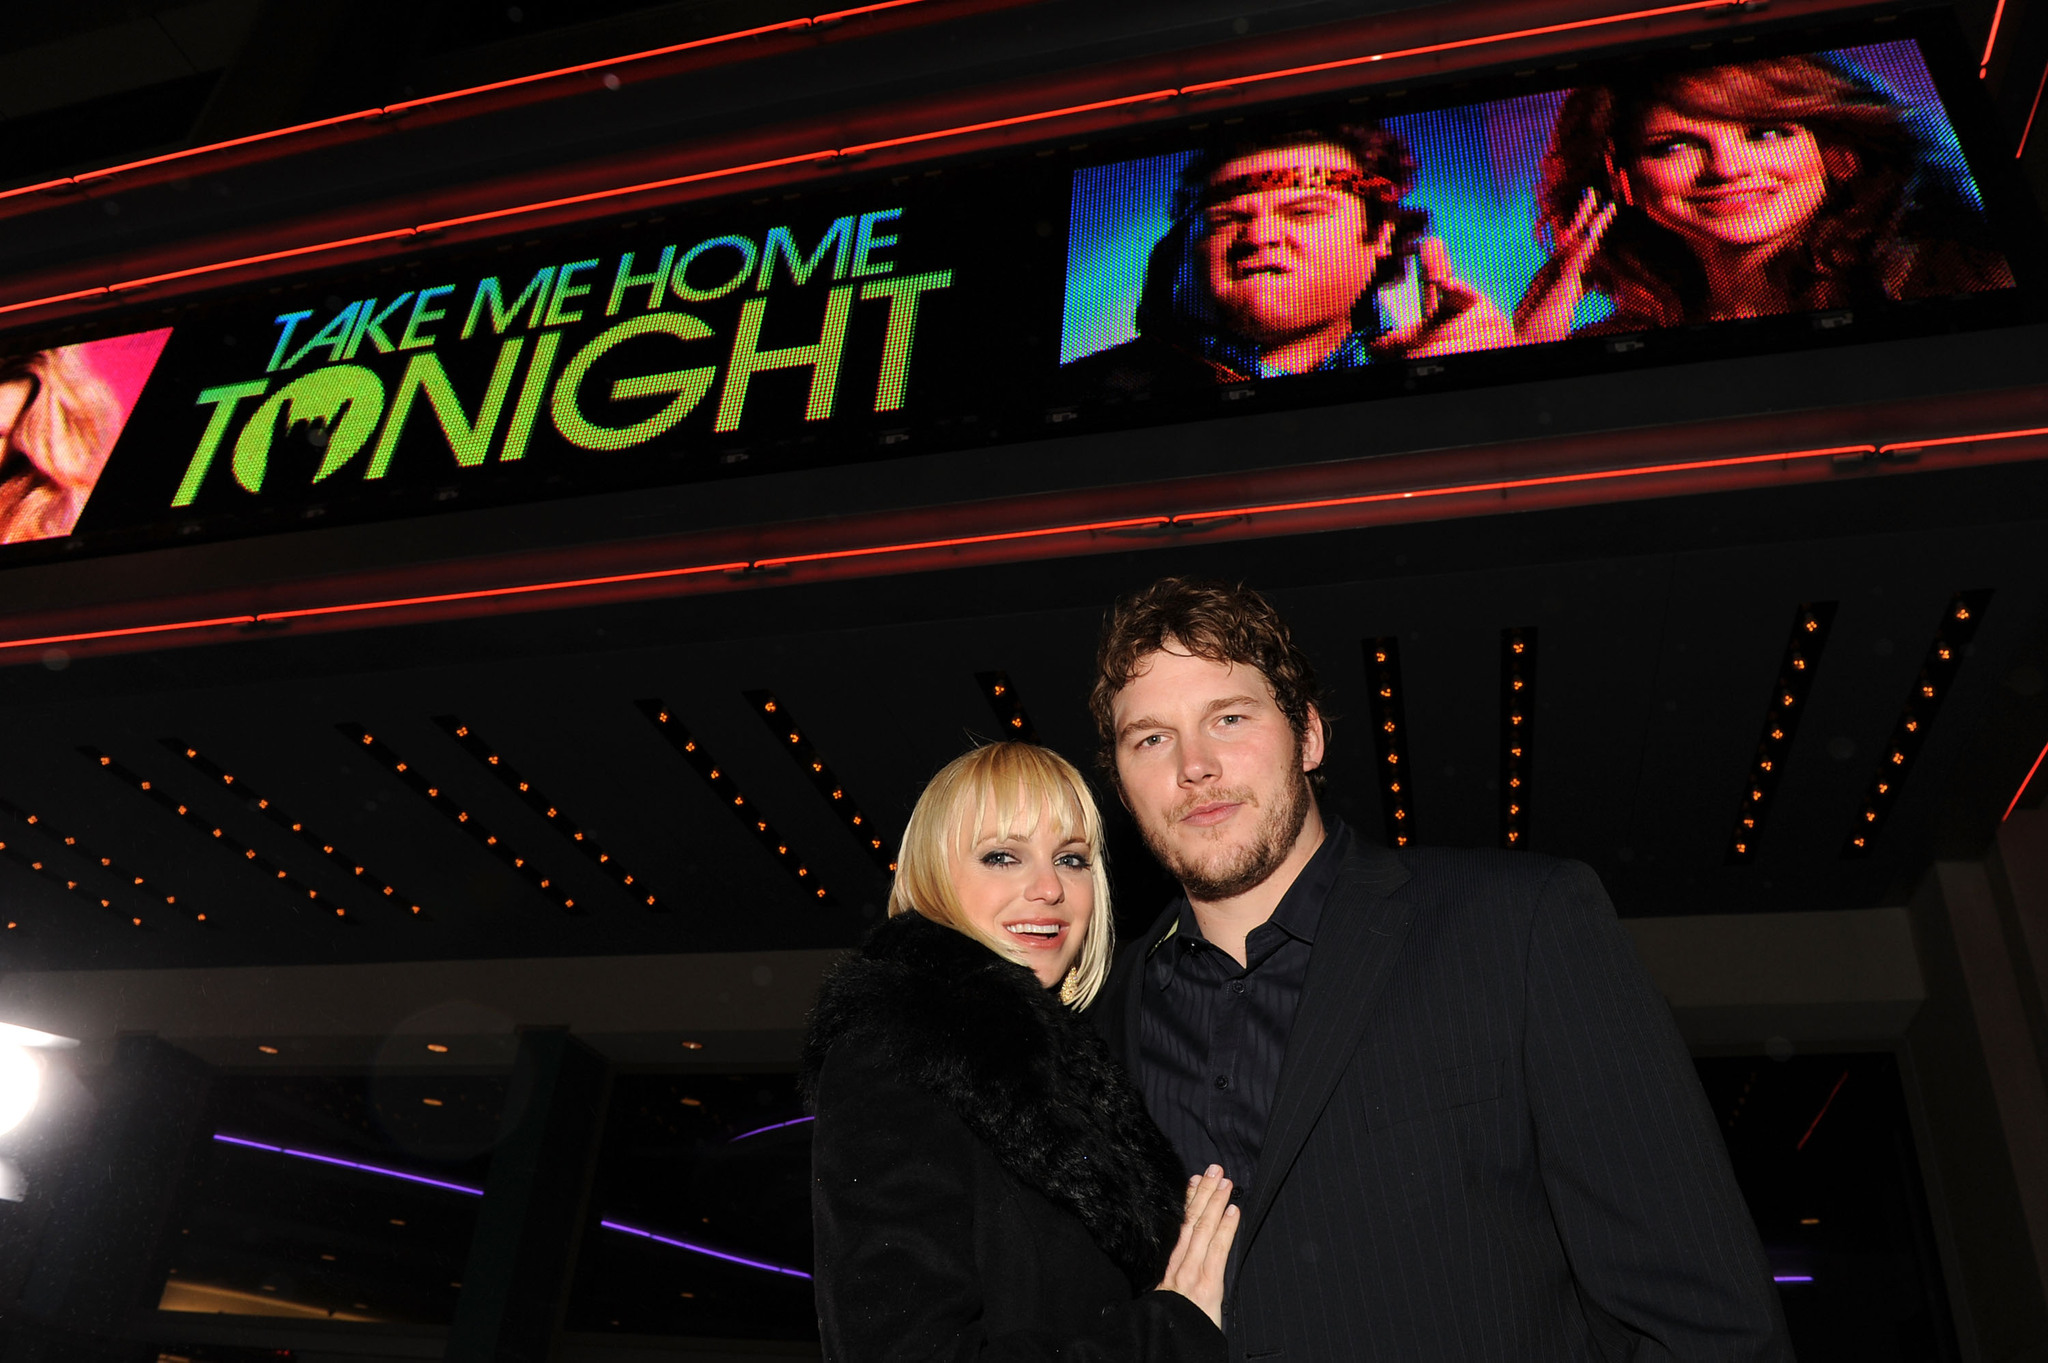 Anna Faris and Chris Pratt at event of Take Me Home Tonight (2011) photo #489218